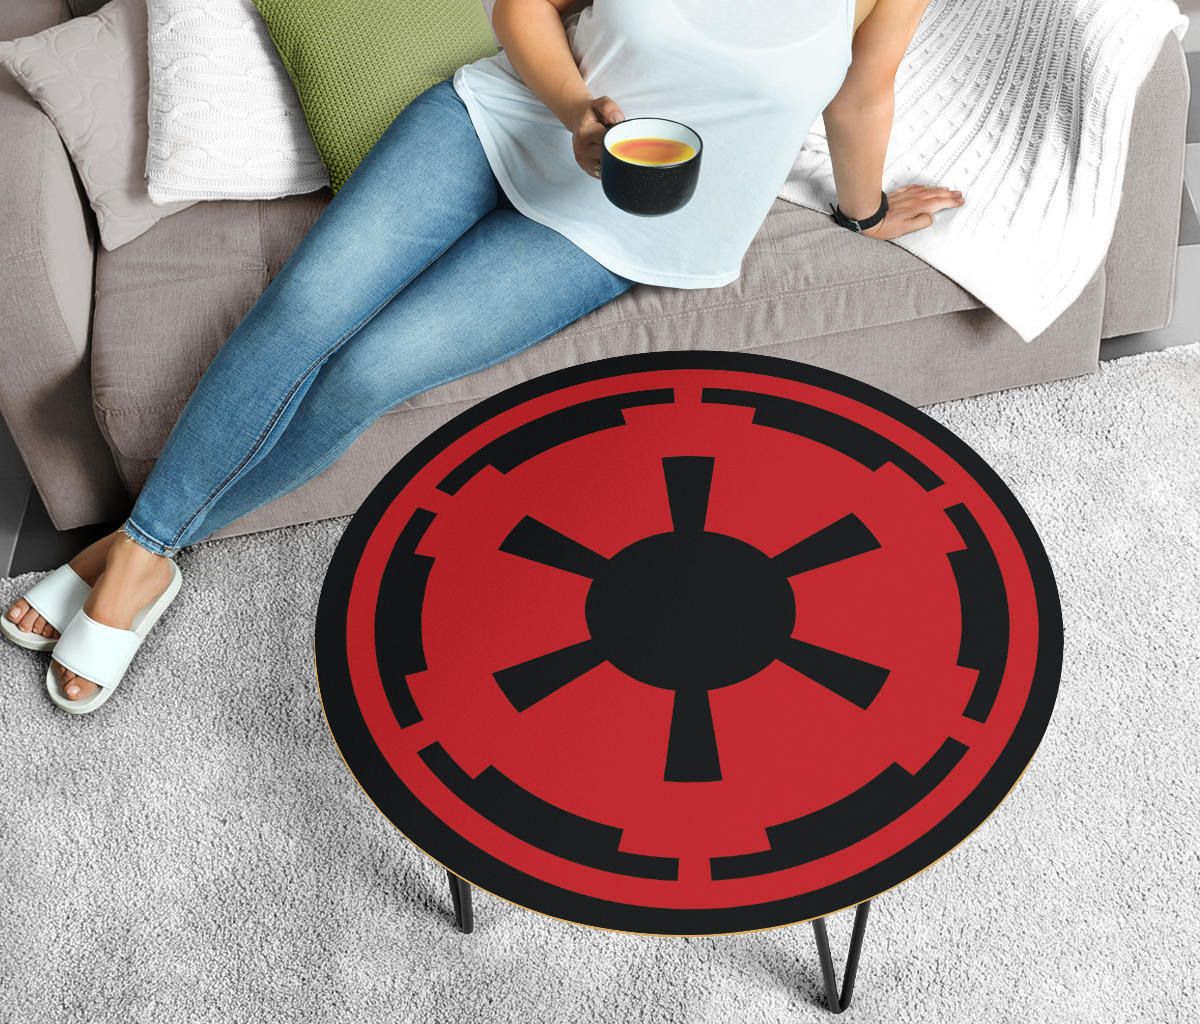 Star Wars Coffee Table - Galactic Empire - Modern Wood Round Table